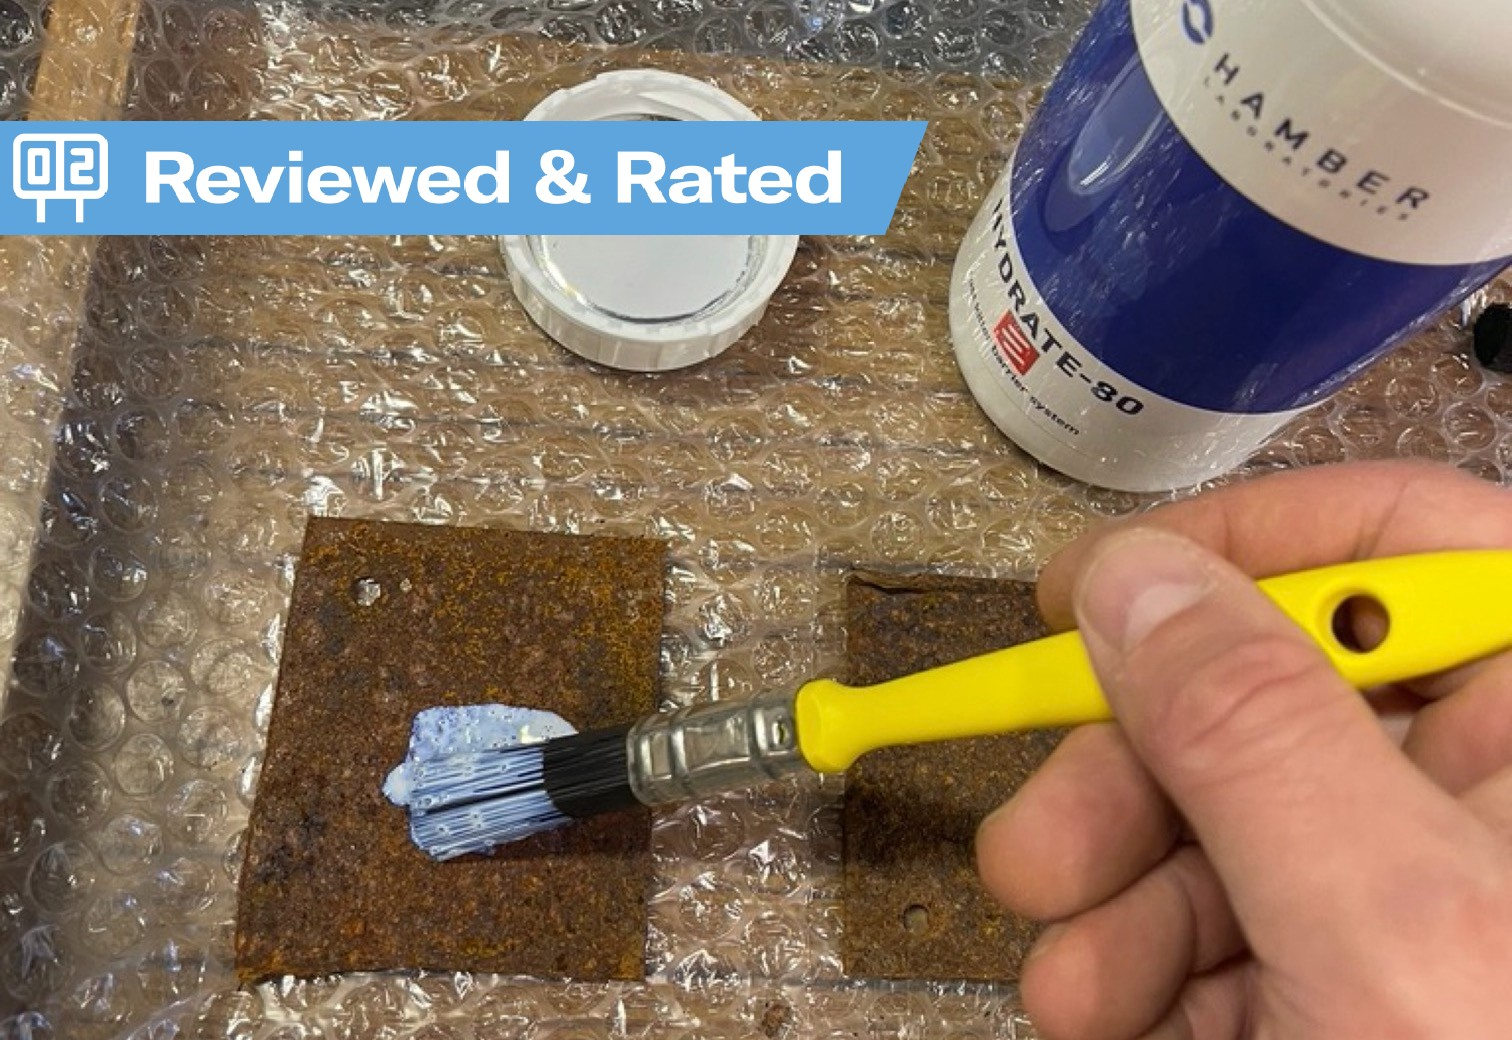 Reviewed & Rated: Rust converters